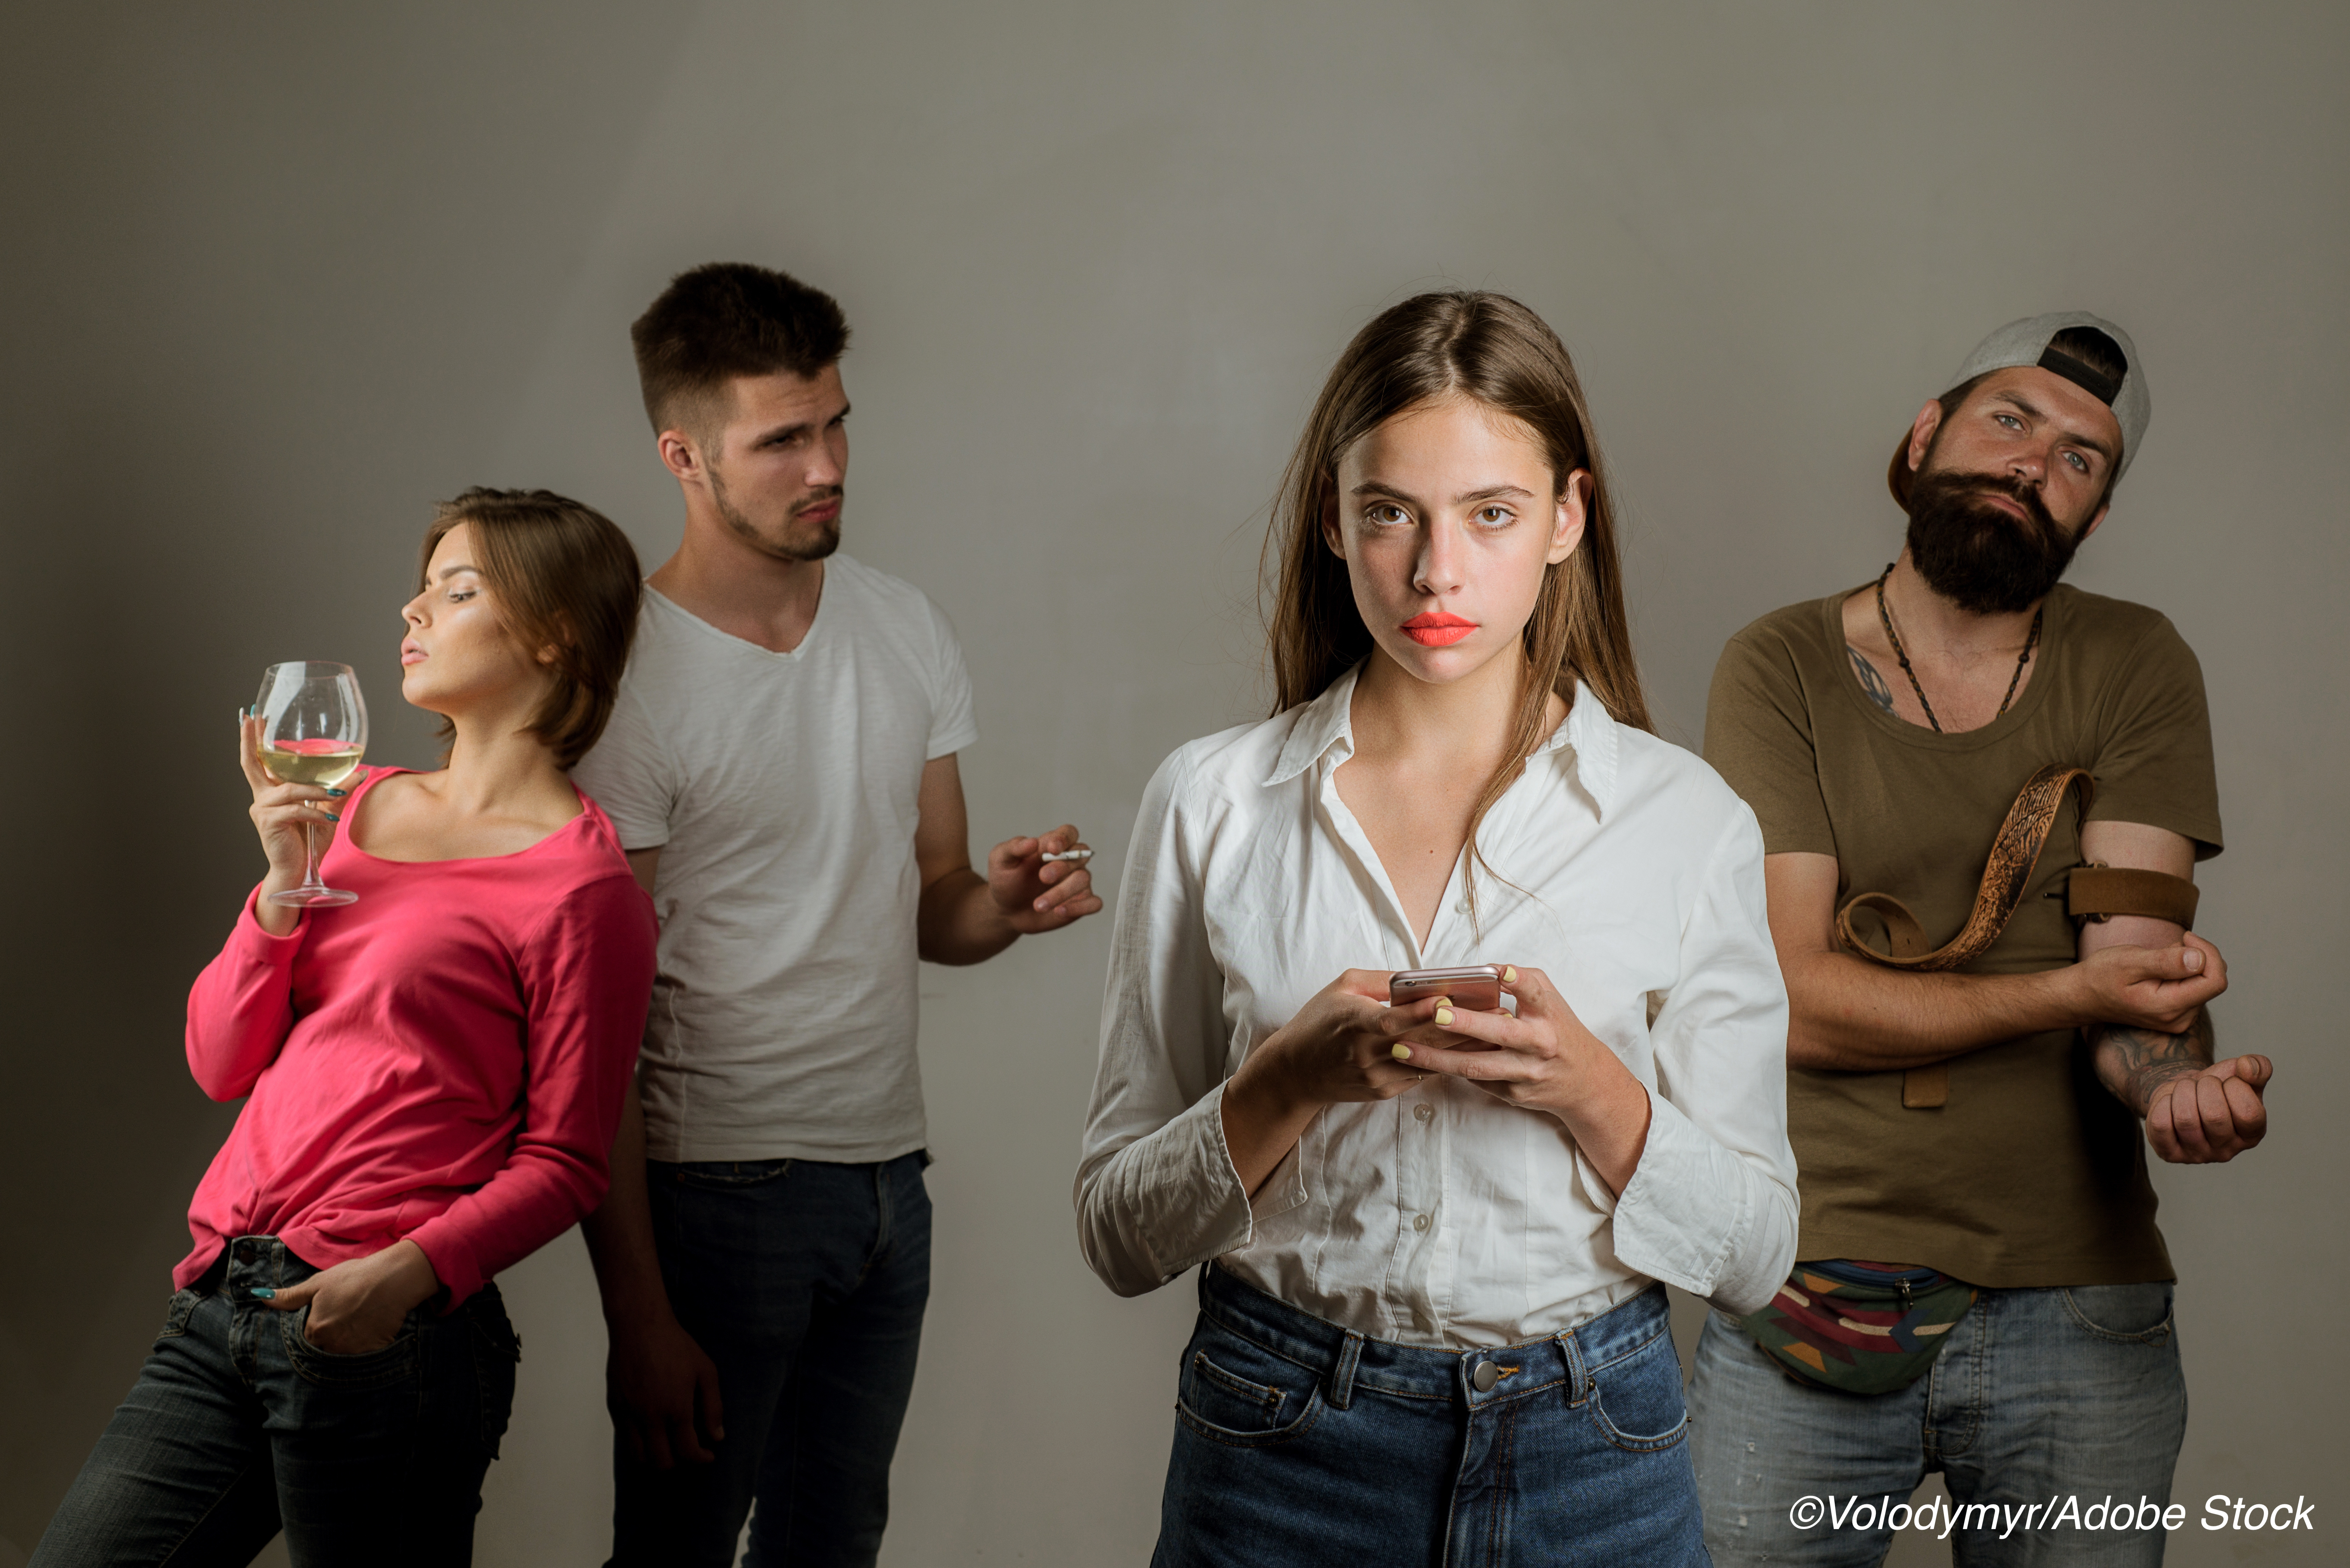 Internet-Based CBT Effective for Kids with Social Anxiety Disorder